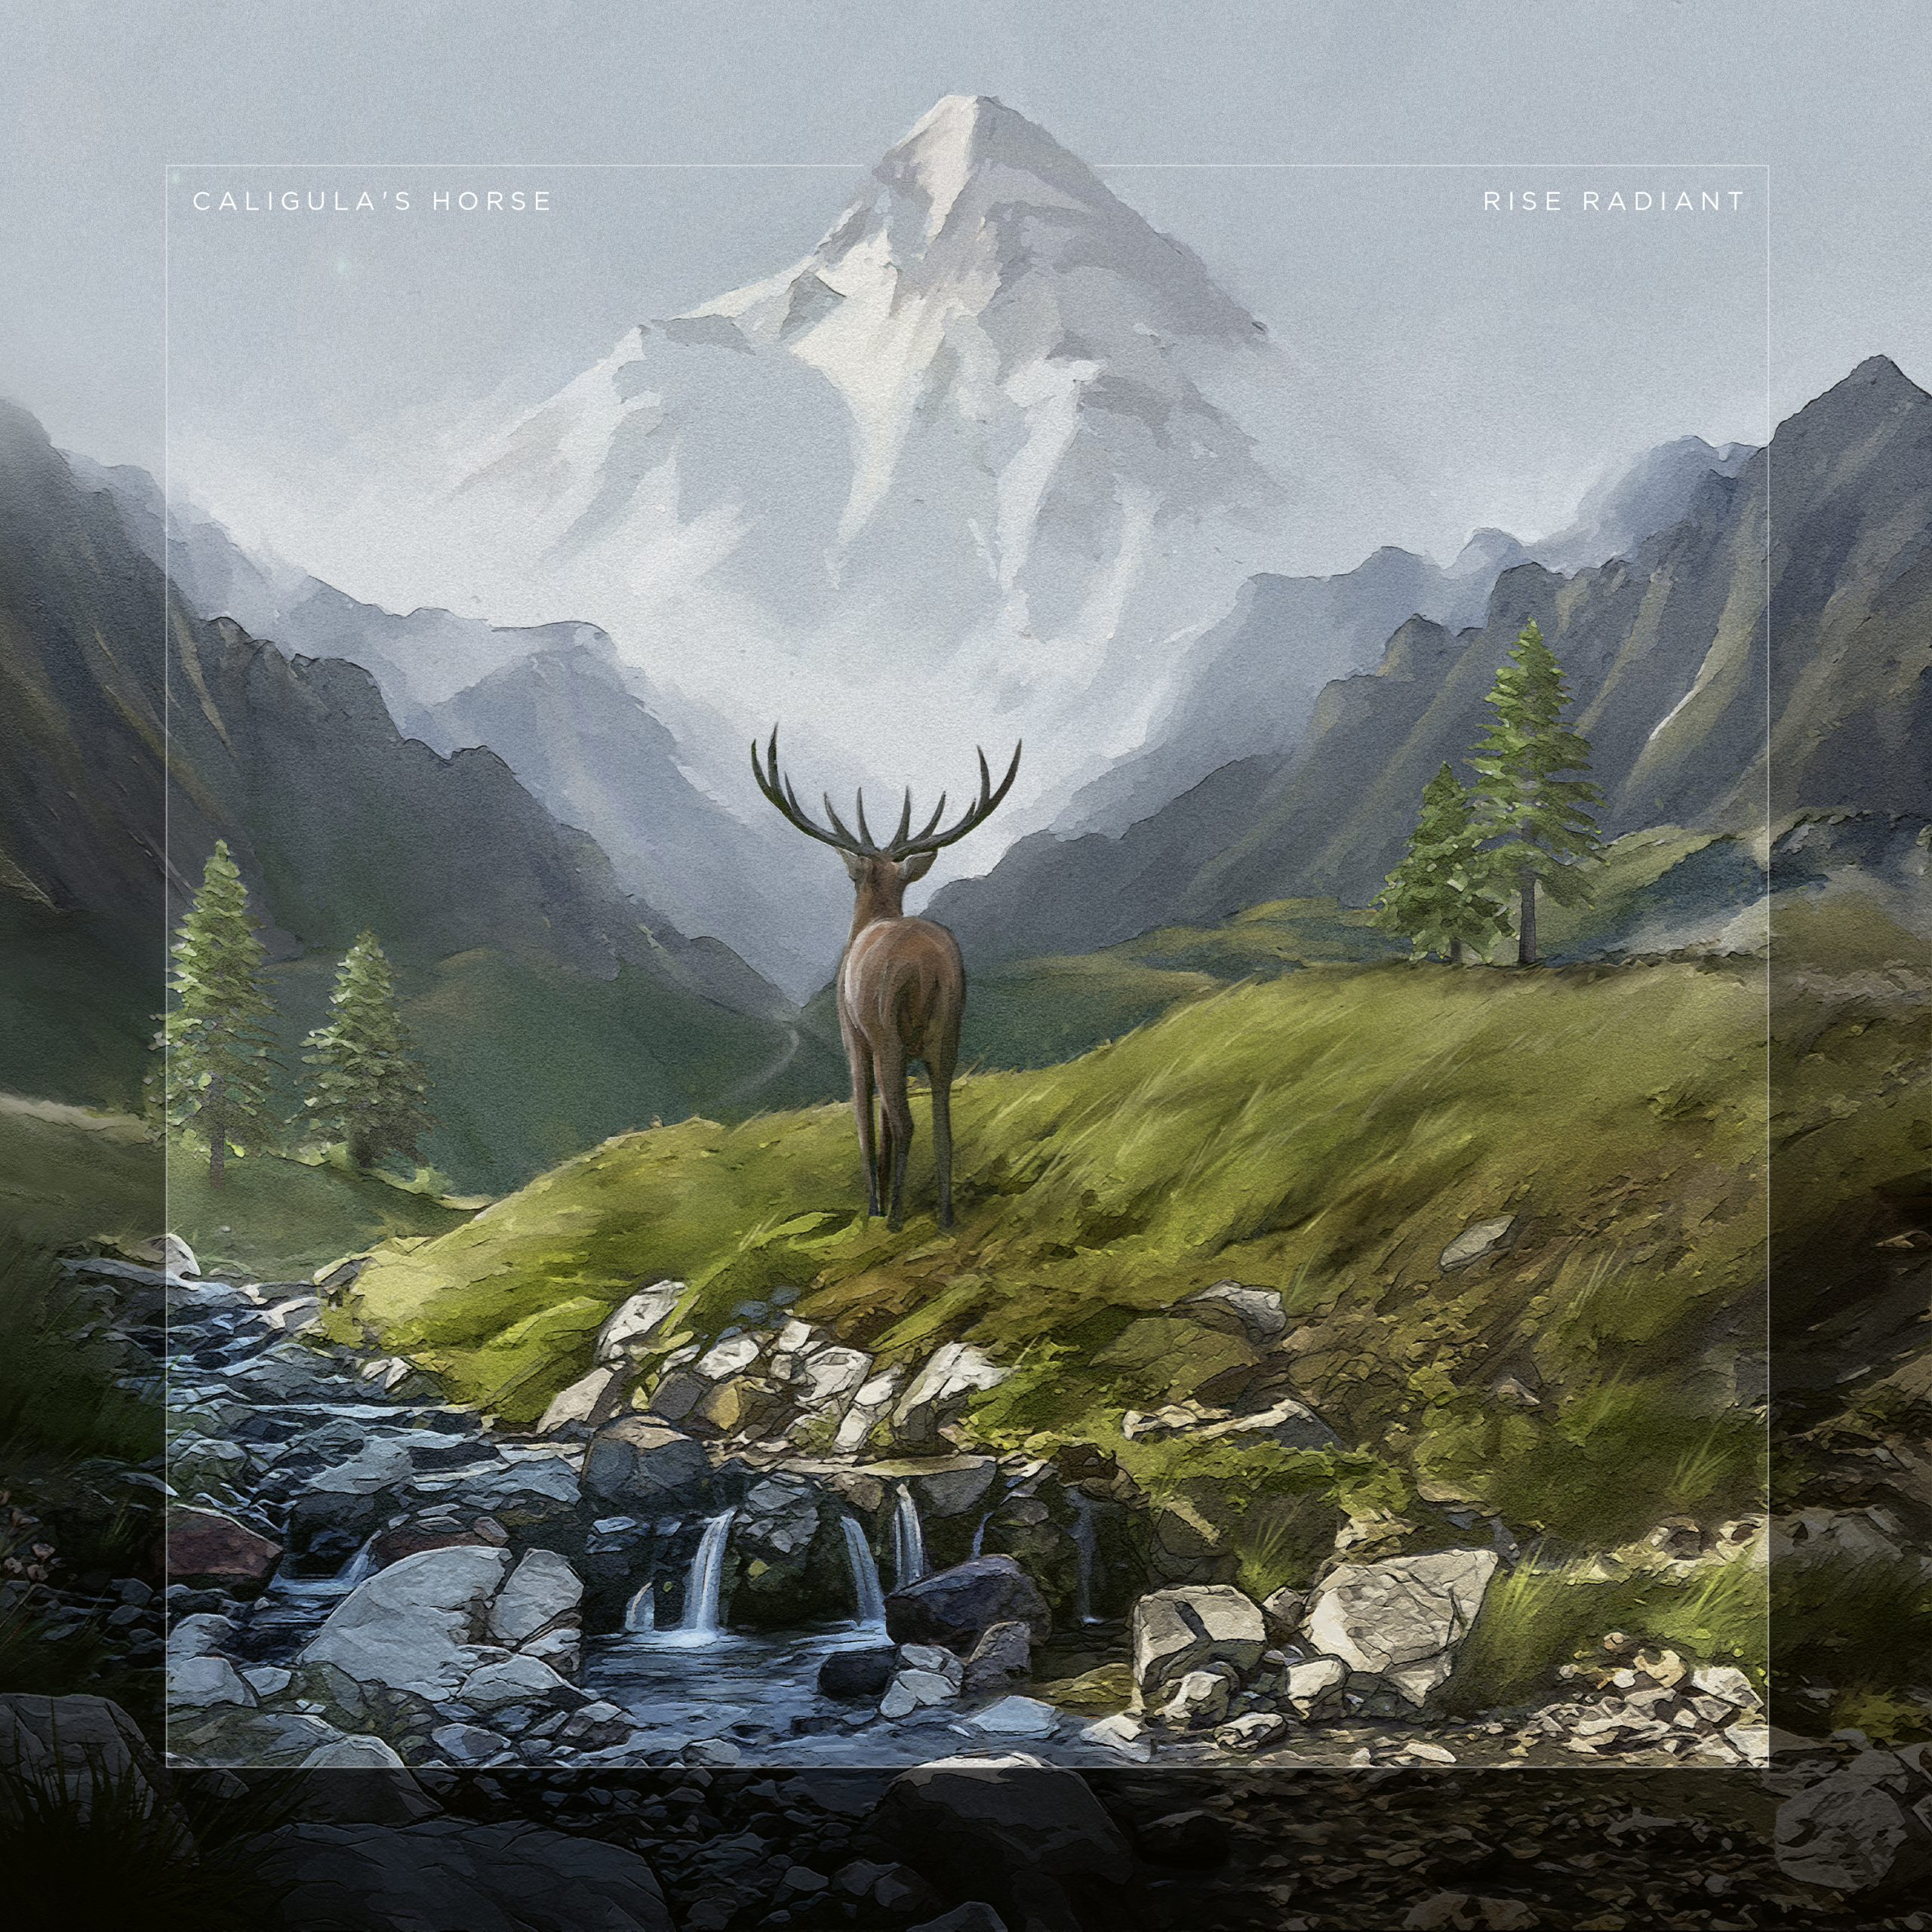 caligulas-horse-rise-radiant-progmetalkino-fuer-die-ohren-album-review